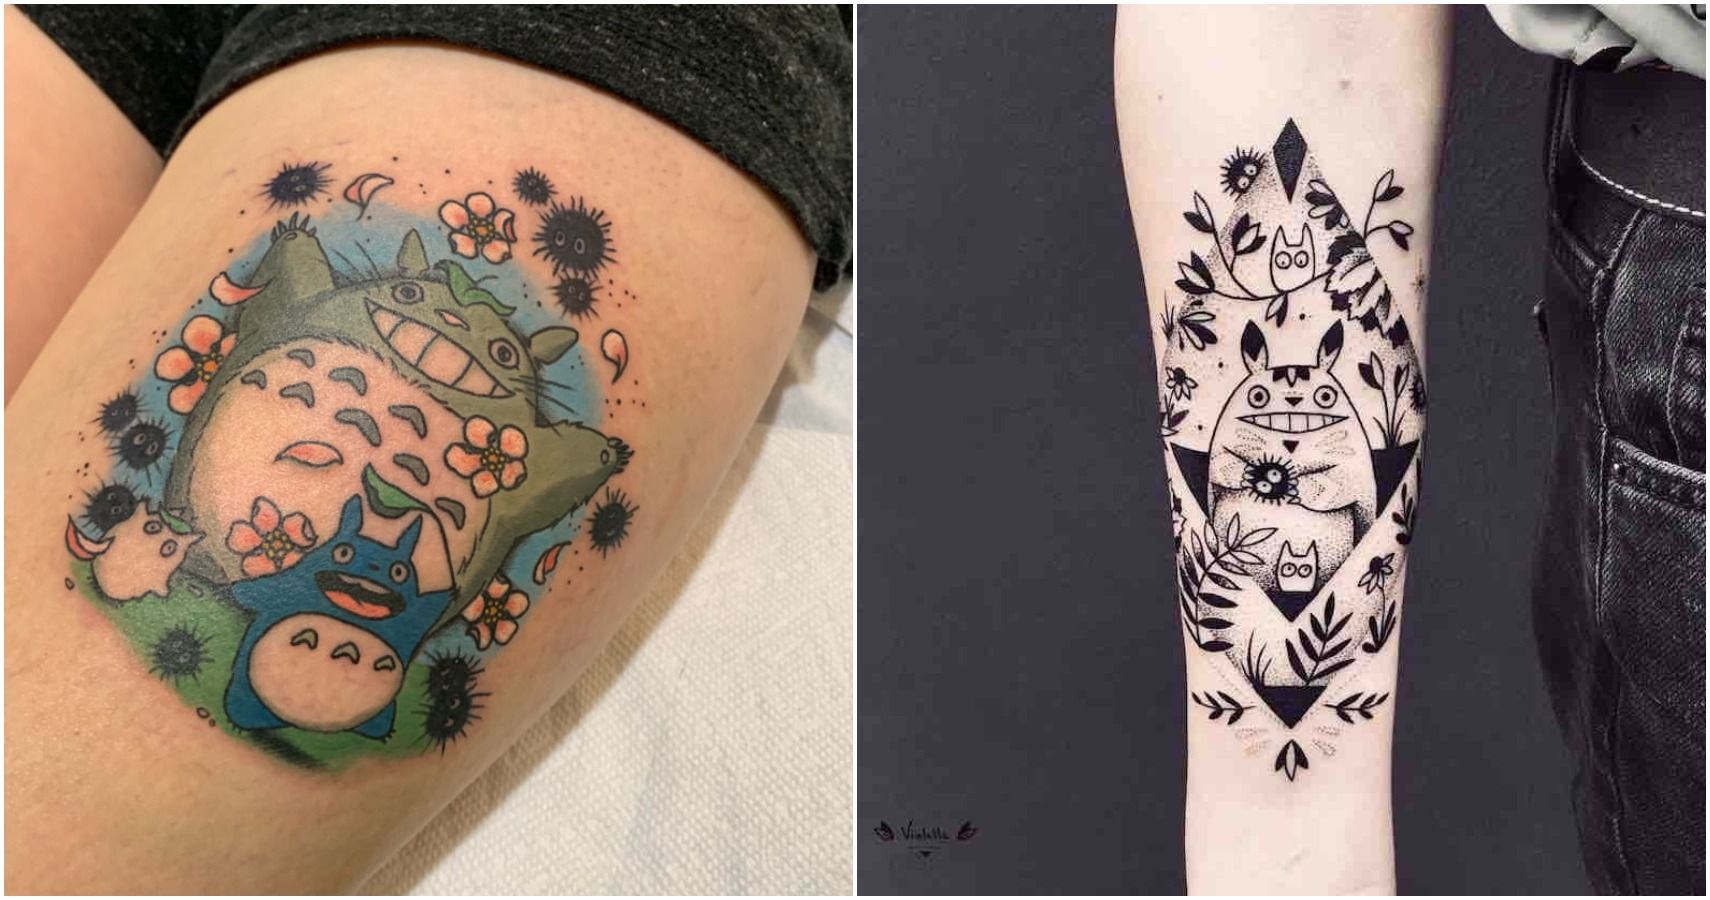 My Neighbor Totoro 10 Tattoos That Will Inspire Ghibli Fans To Get Inked